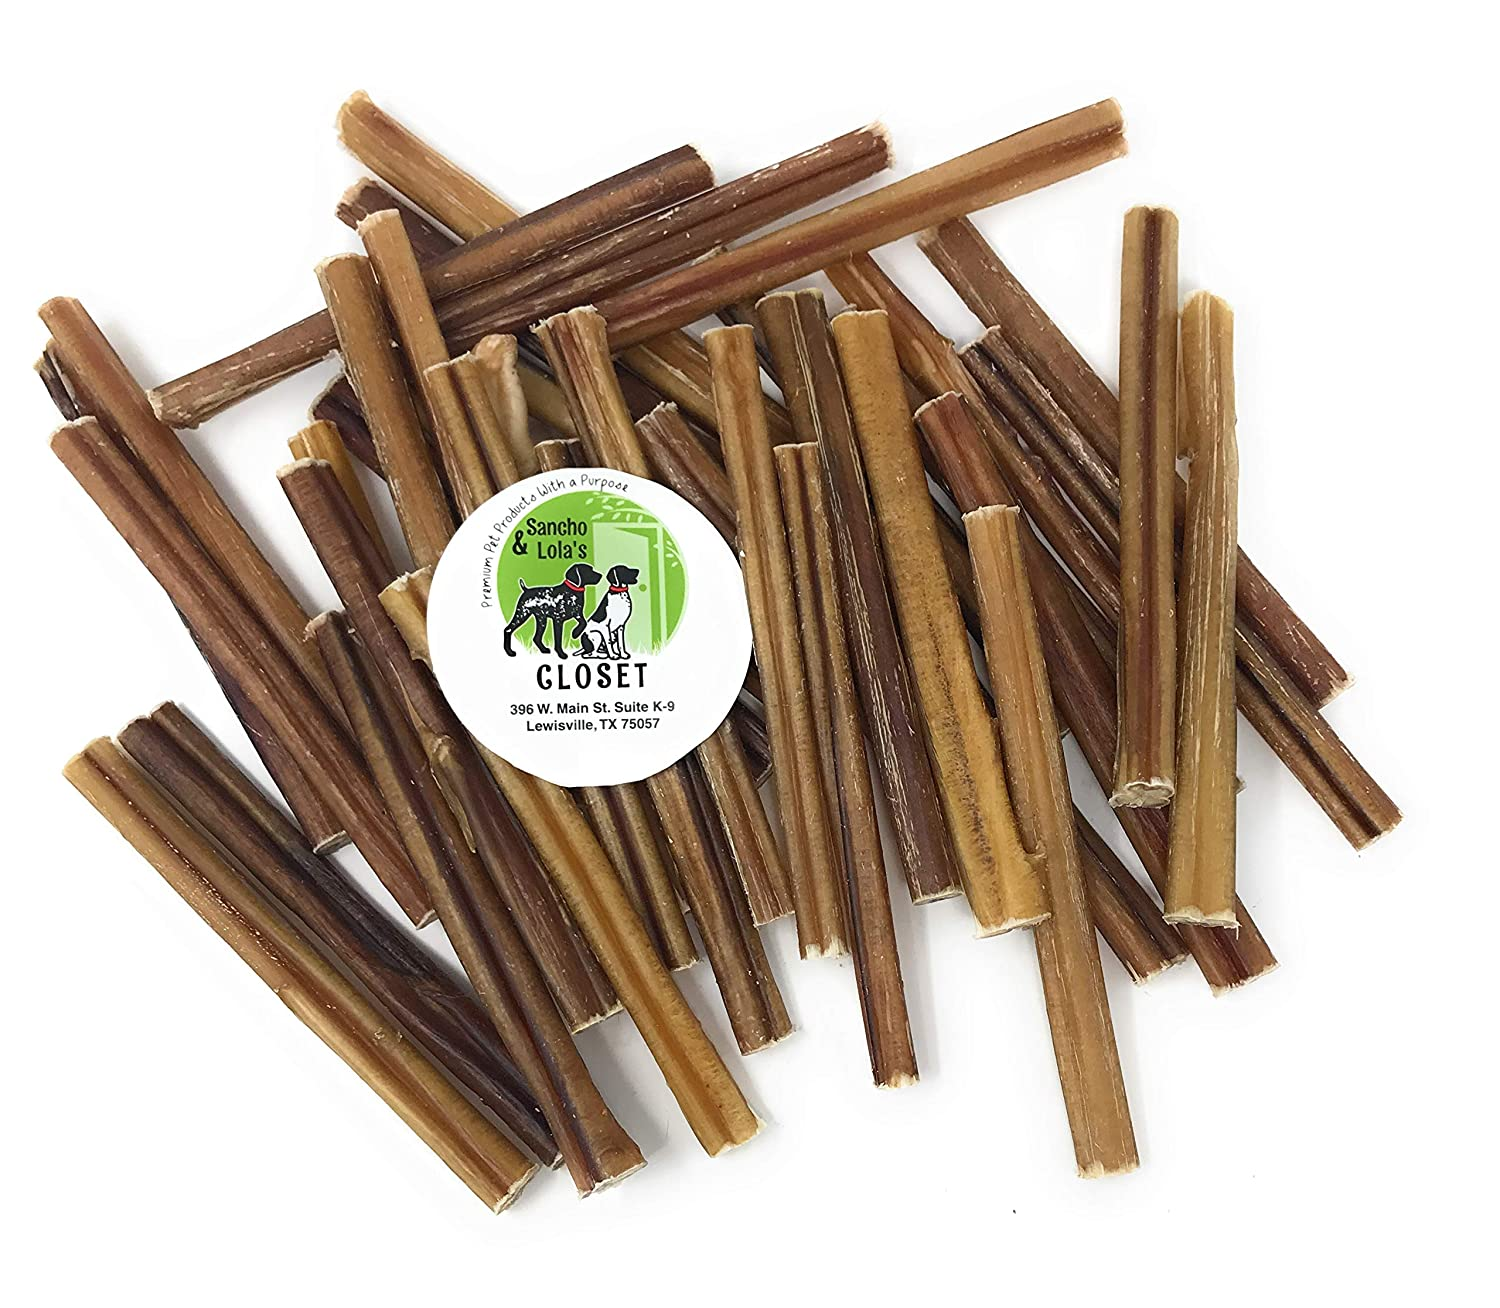 Sancho Lola s 6 Bully Sticks for Dogs Made in USA Rawhide-Free Grain-Free High-Protein Small Beef Pizzle Dog Chews